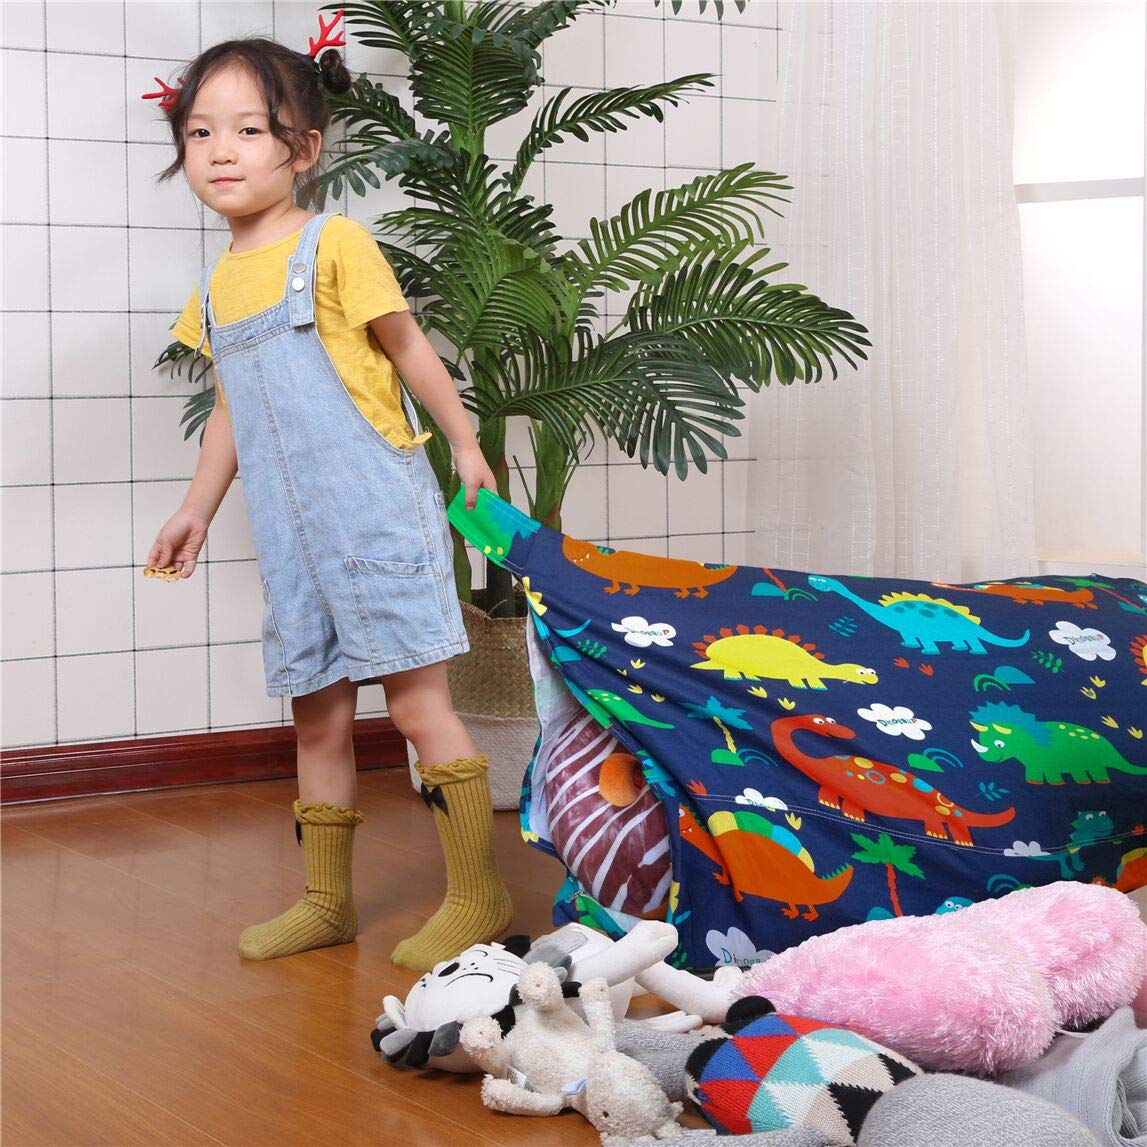 Animal stuffed Storage Bean Bag Chair for both Kids and Adults